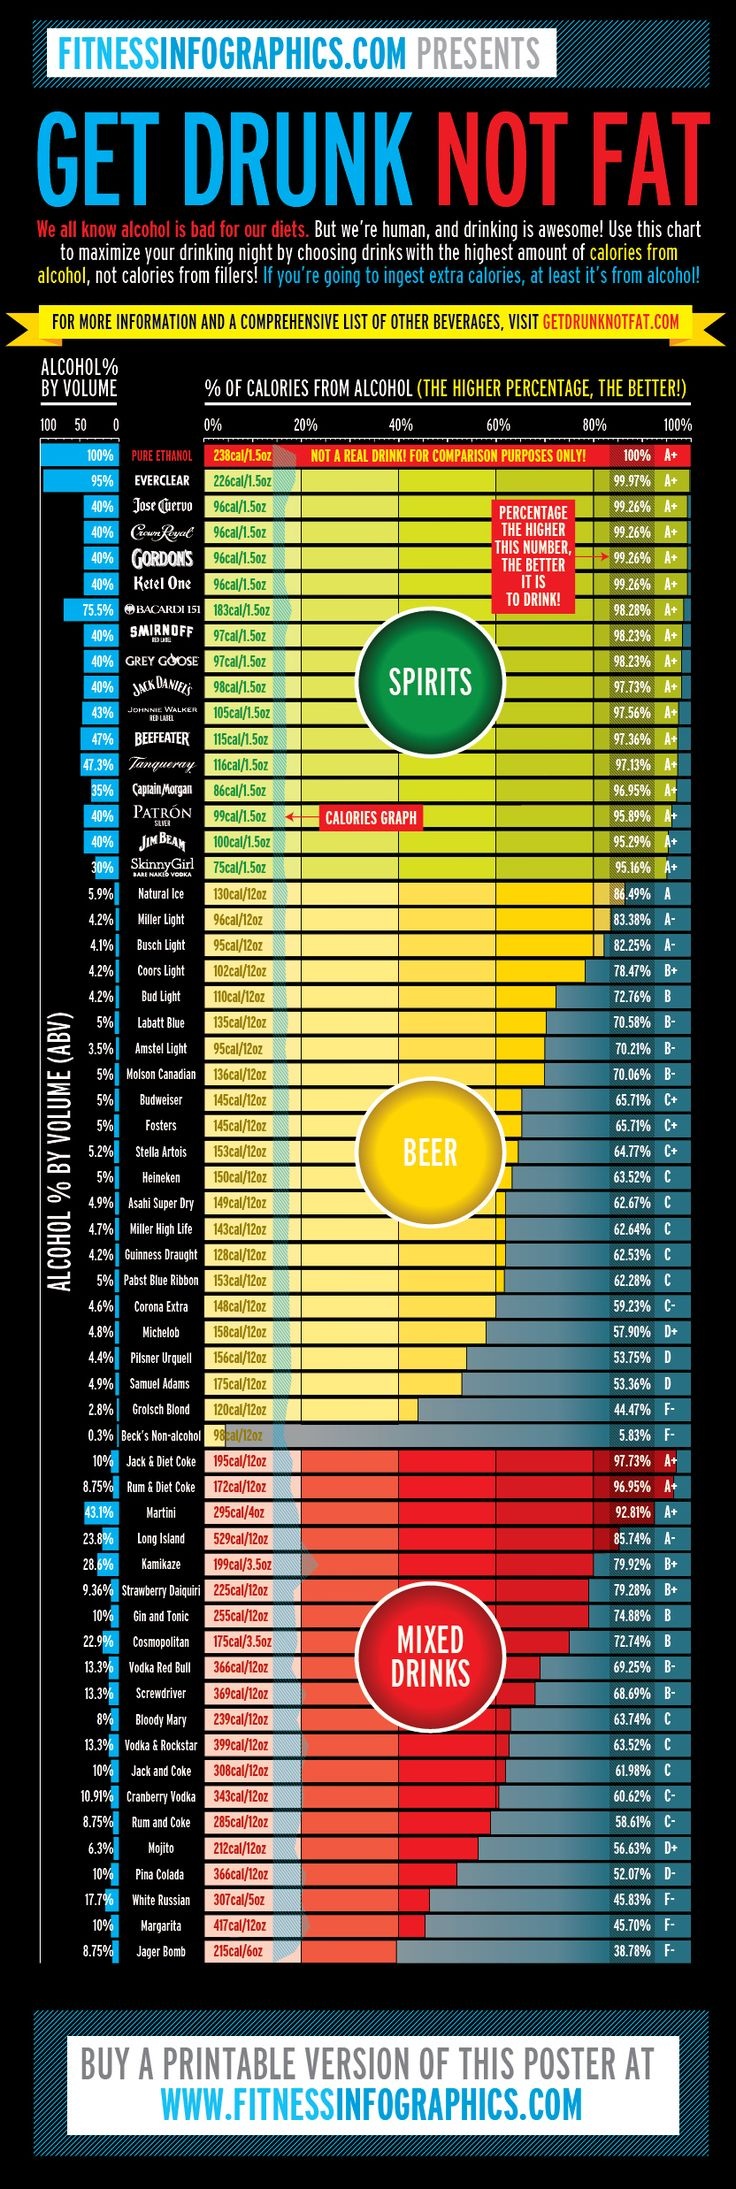 We all know alcohol is bad for our diets. But we're human, and drinking is awesome! Use this chart to maximize your drinking night by choosing drinks with the highest amount of calories from alcohol, not calories from fillers! The better the alcohol-to-calorie ratio, the less drinks you'll need to attain glorious drunkenness